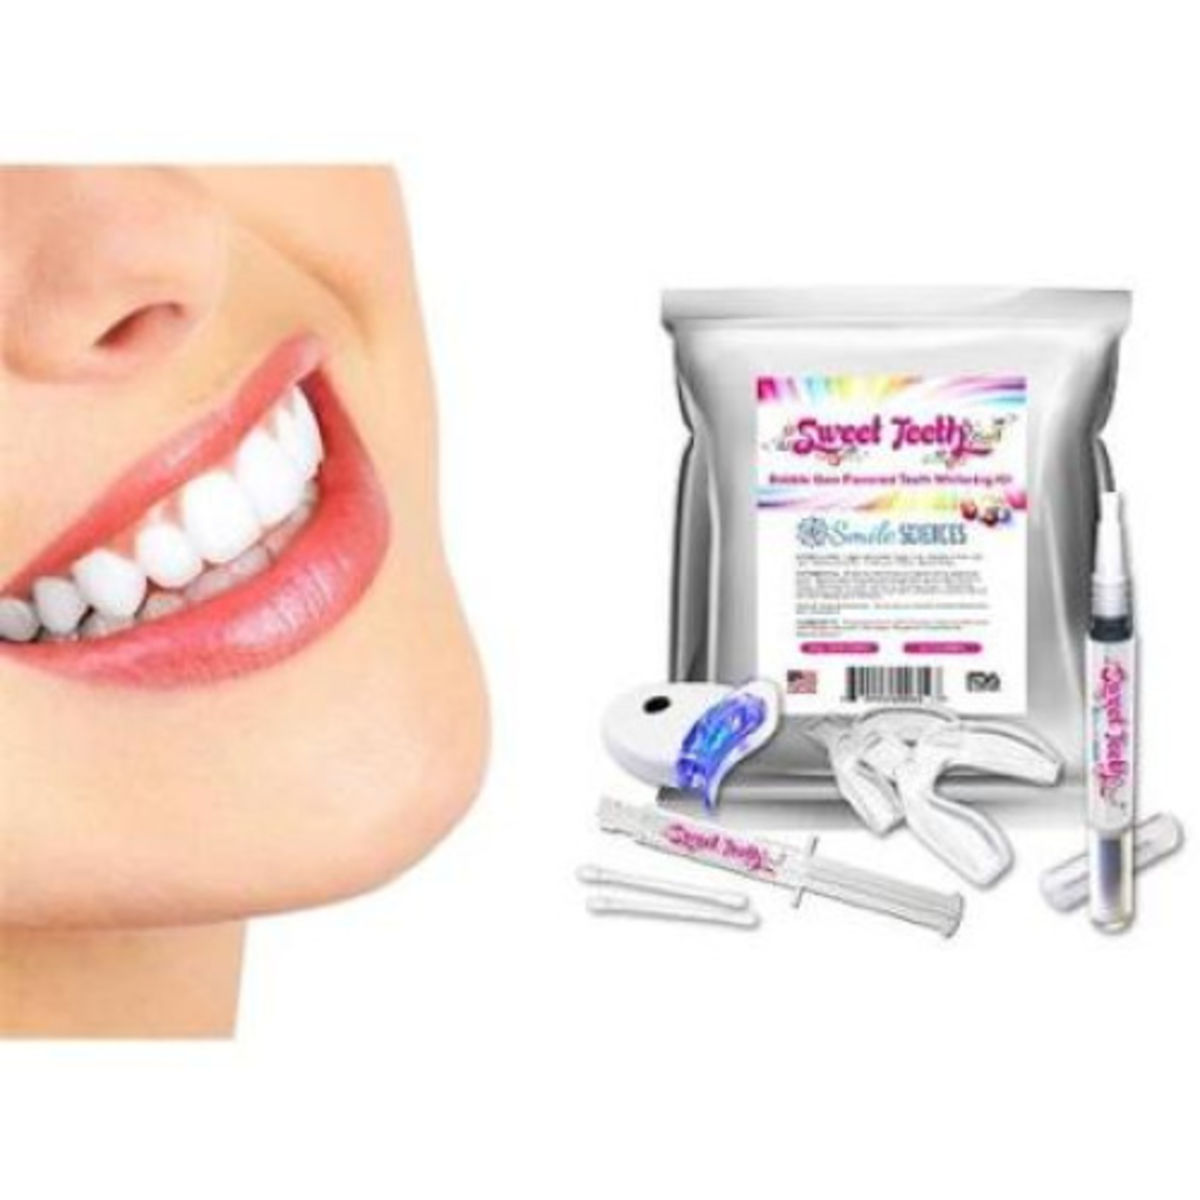 Headline for Best Teeth Whitening Kits Reviews 2016